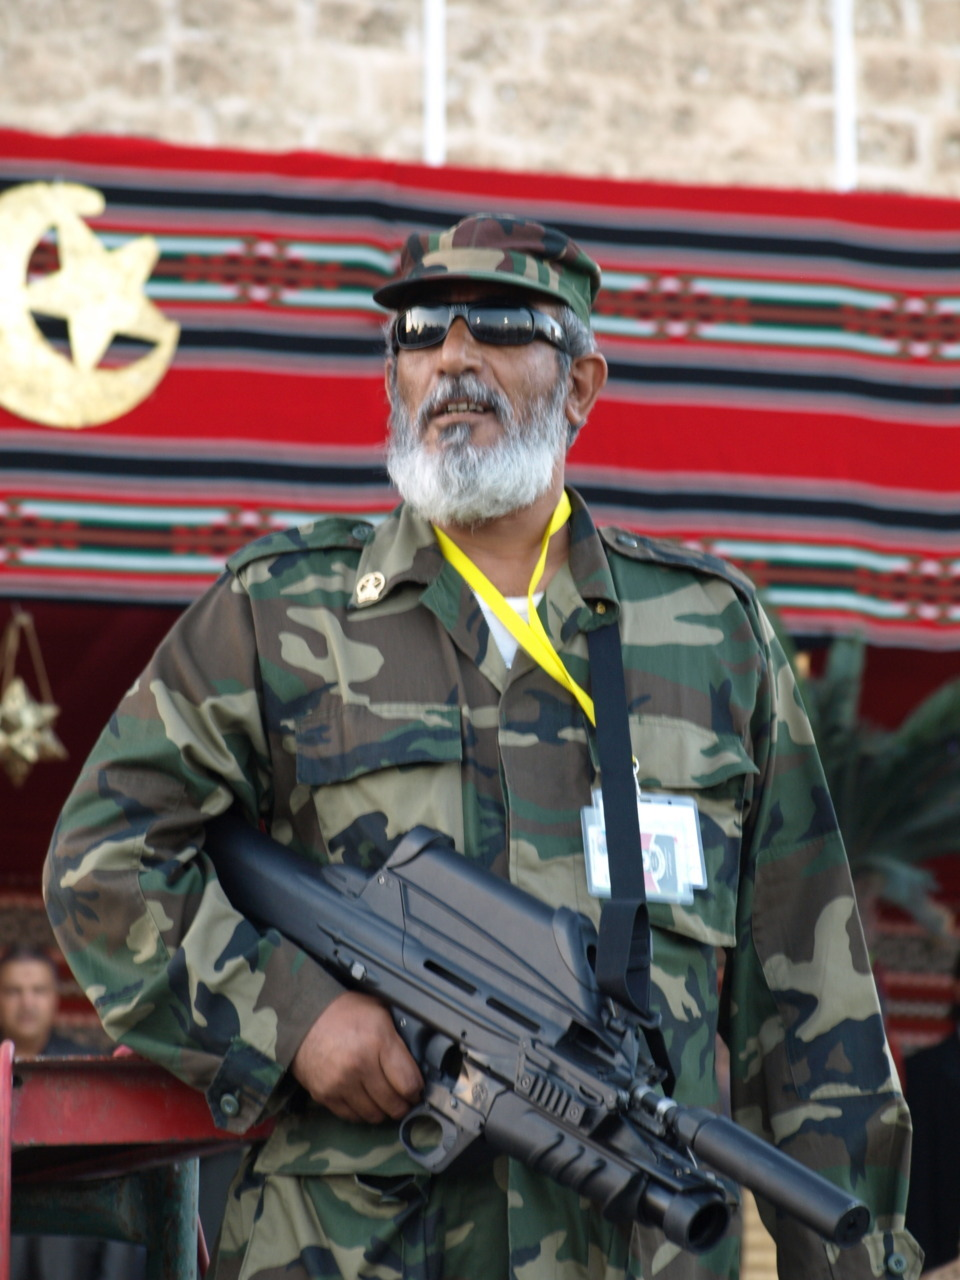 Photo of the day: A Libyan rebel with… a FN F2000 (equipped with noise suppressor and LG1 grenade-launcher).  This picture was taken on the Friday of Victory, in October 2011, on Martyrs Square, Tripoli.  Photo by Raphael Thelen - www.RaphaelThelen.de